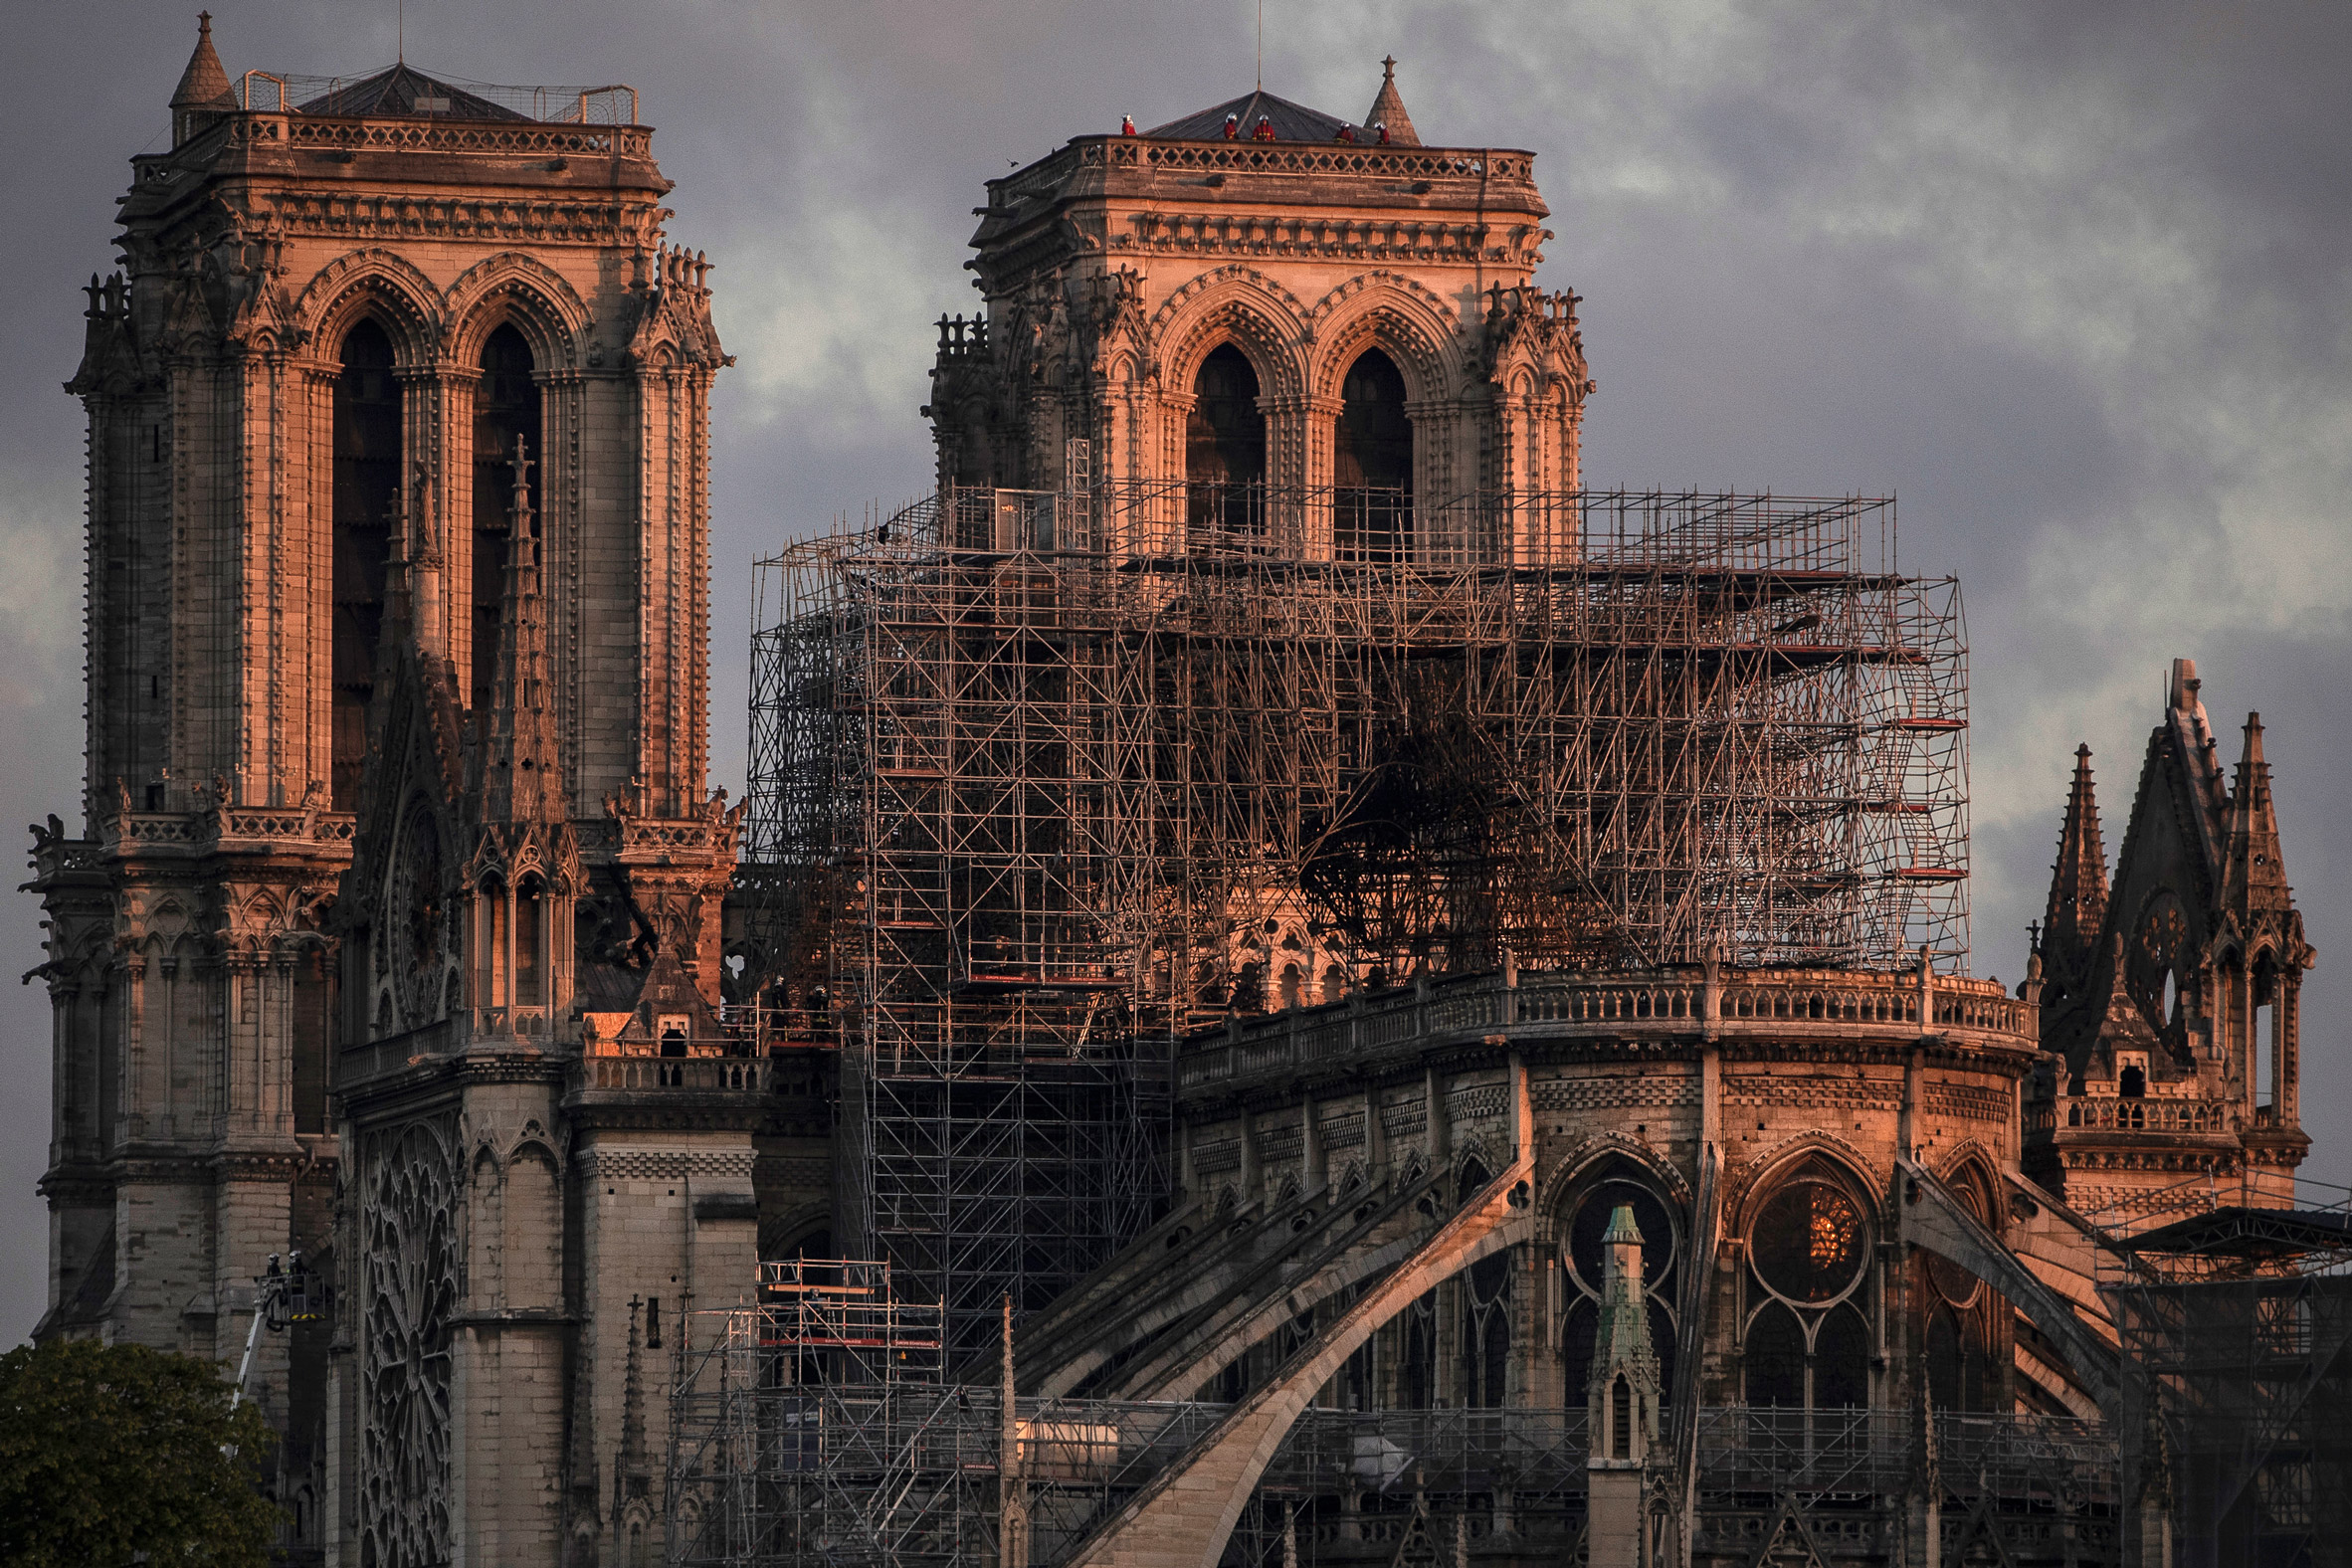 Notre Dame could take decades to repair after the fire